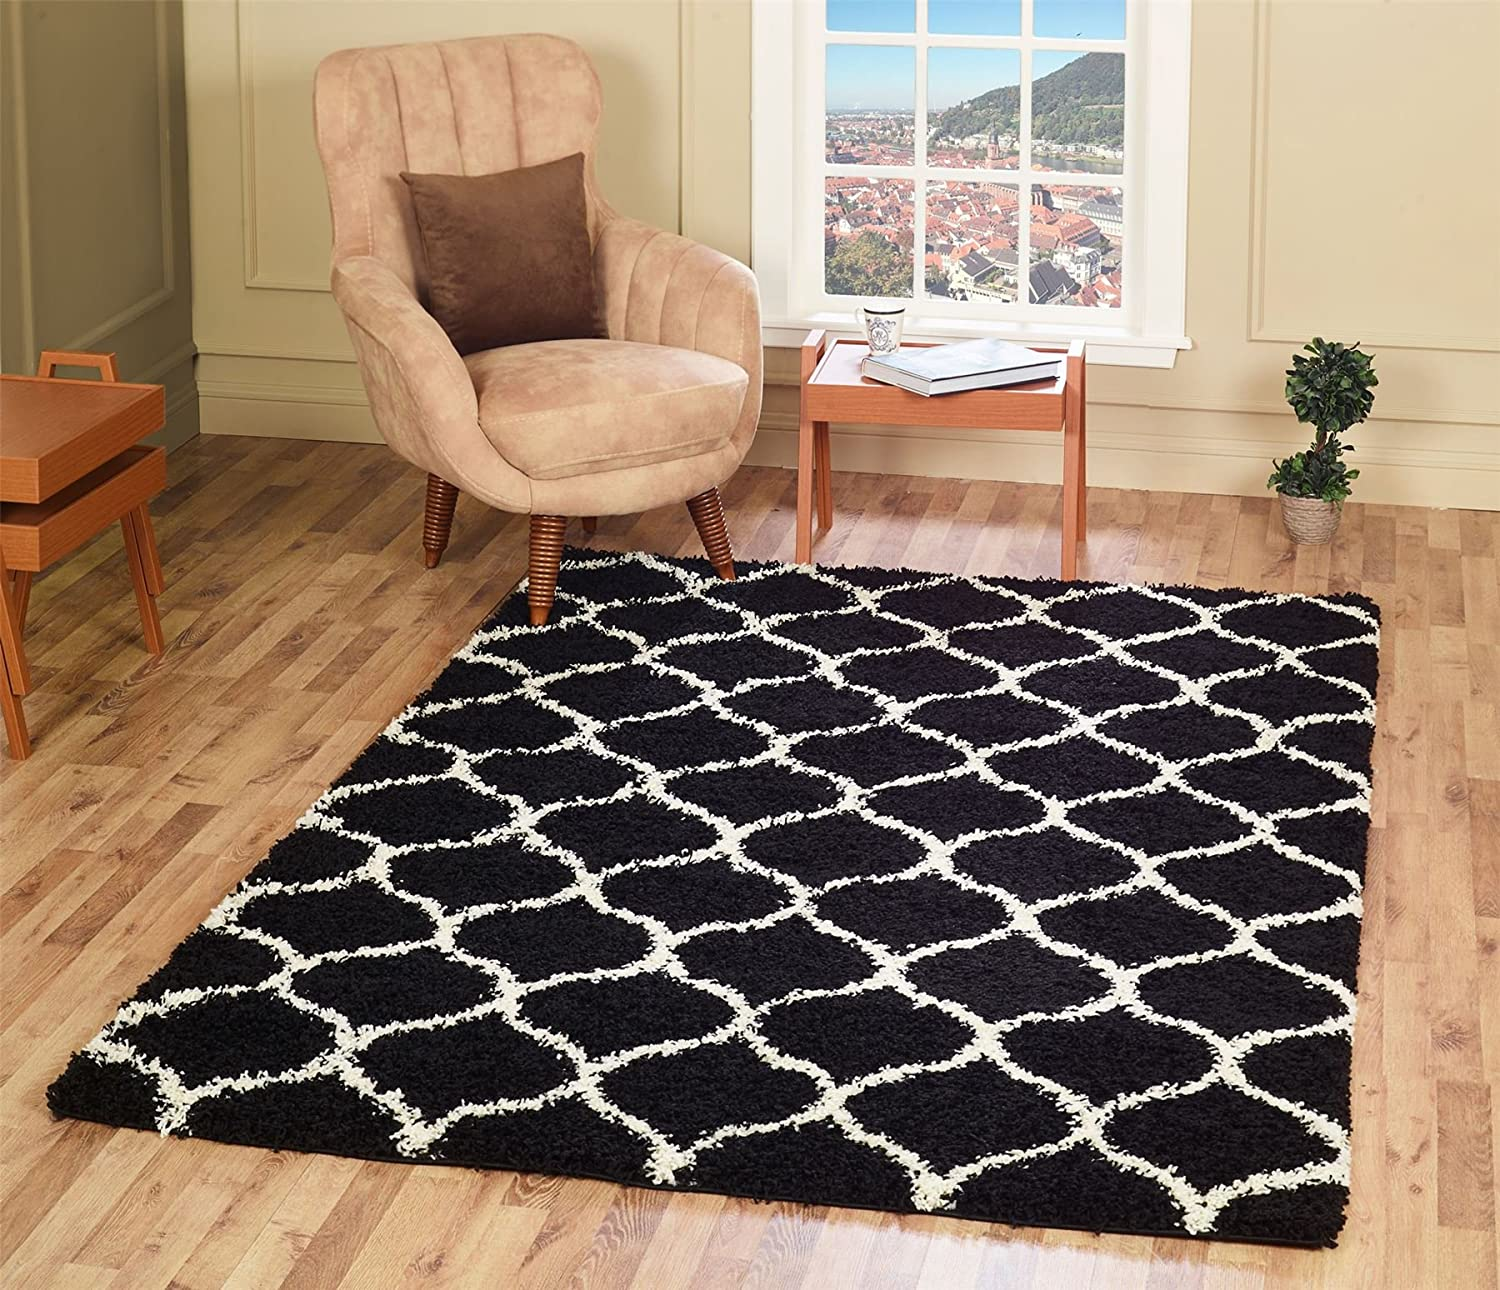 A2Z RUG Cozy Super Trellis Shaggy Rugs Black & Ivory 120x170 cm - 3'9''x5'5'' ft Contemporary Living Dinning Room & Bedroom Soft Area Rug Trellis Shag Collection